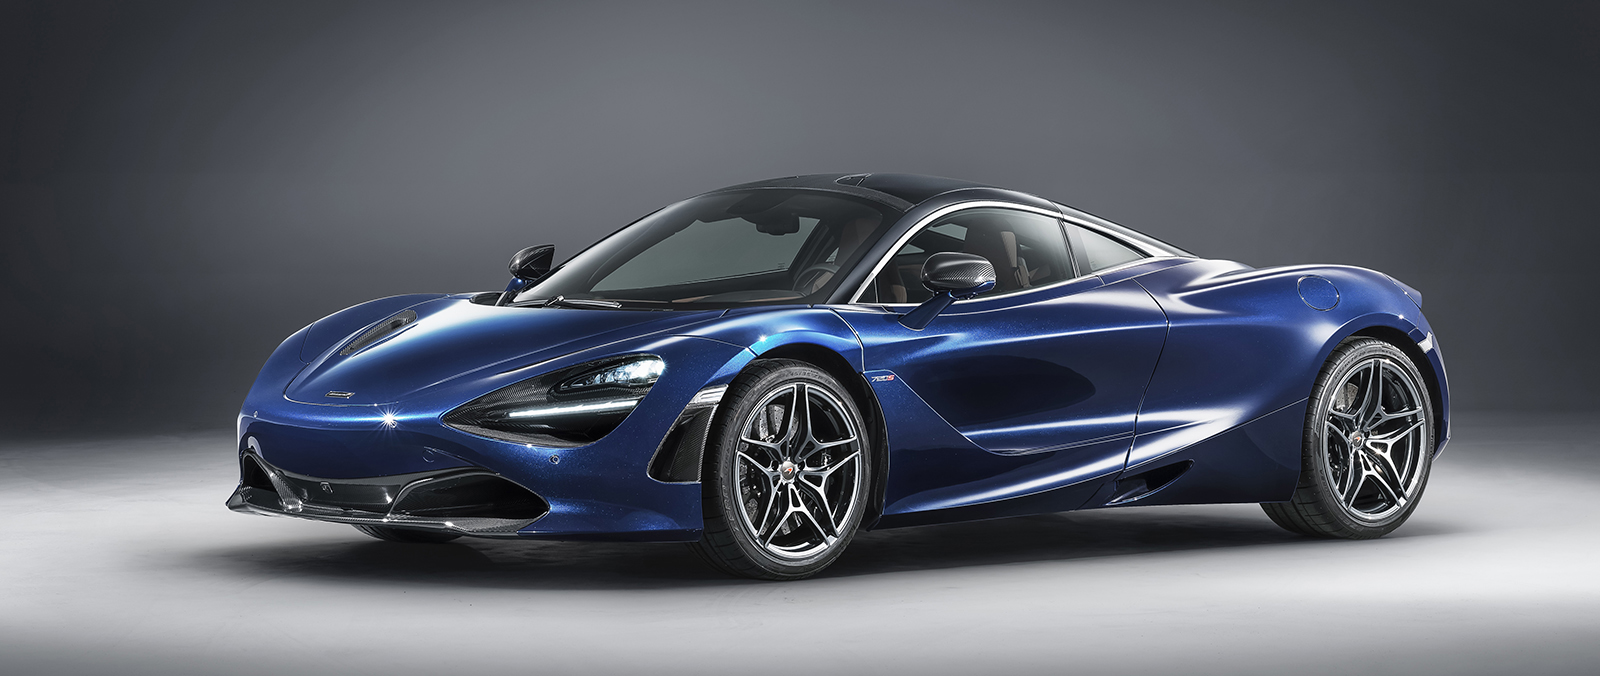 McLaren 720S in de kleur Atlantic Blue